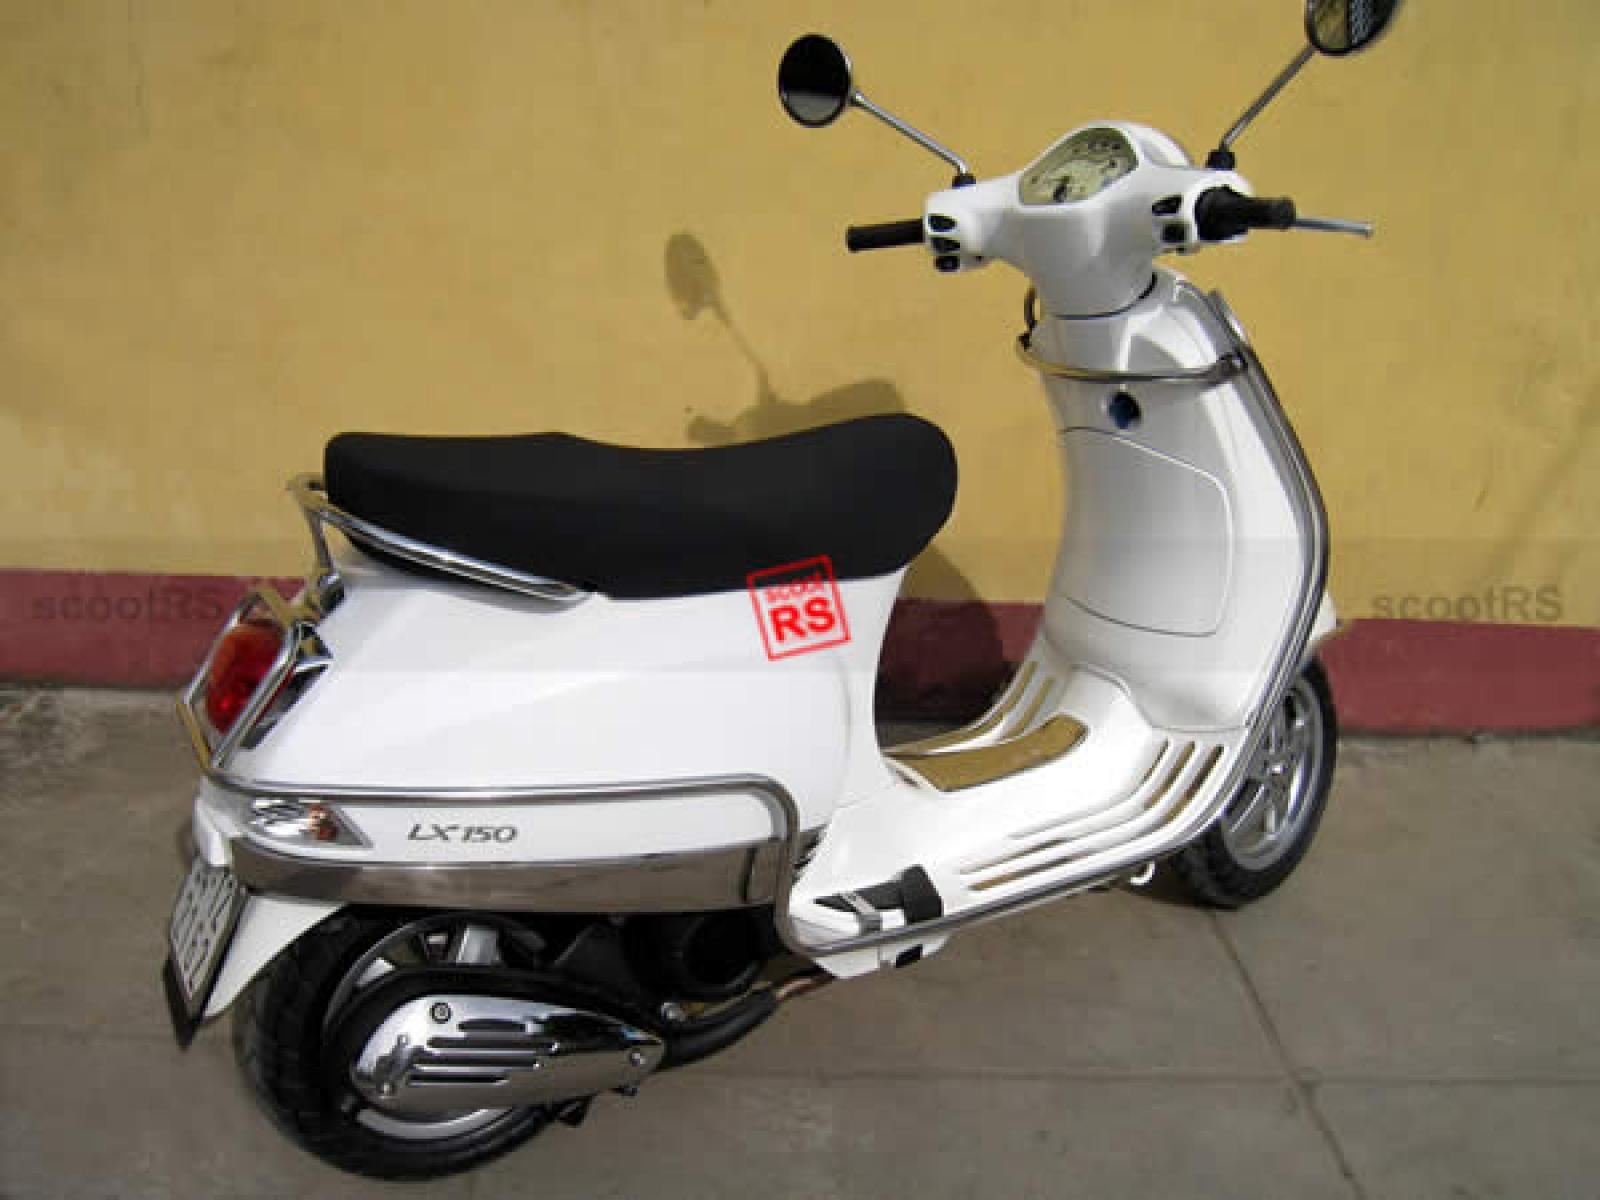 Moto vespa 150 photo - 5